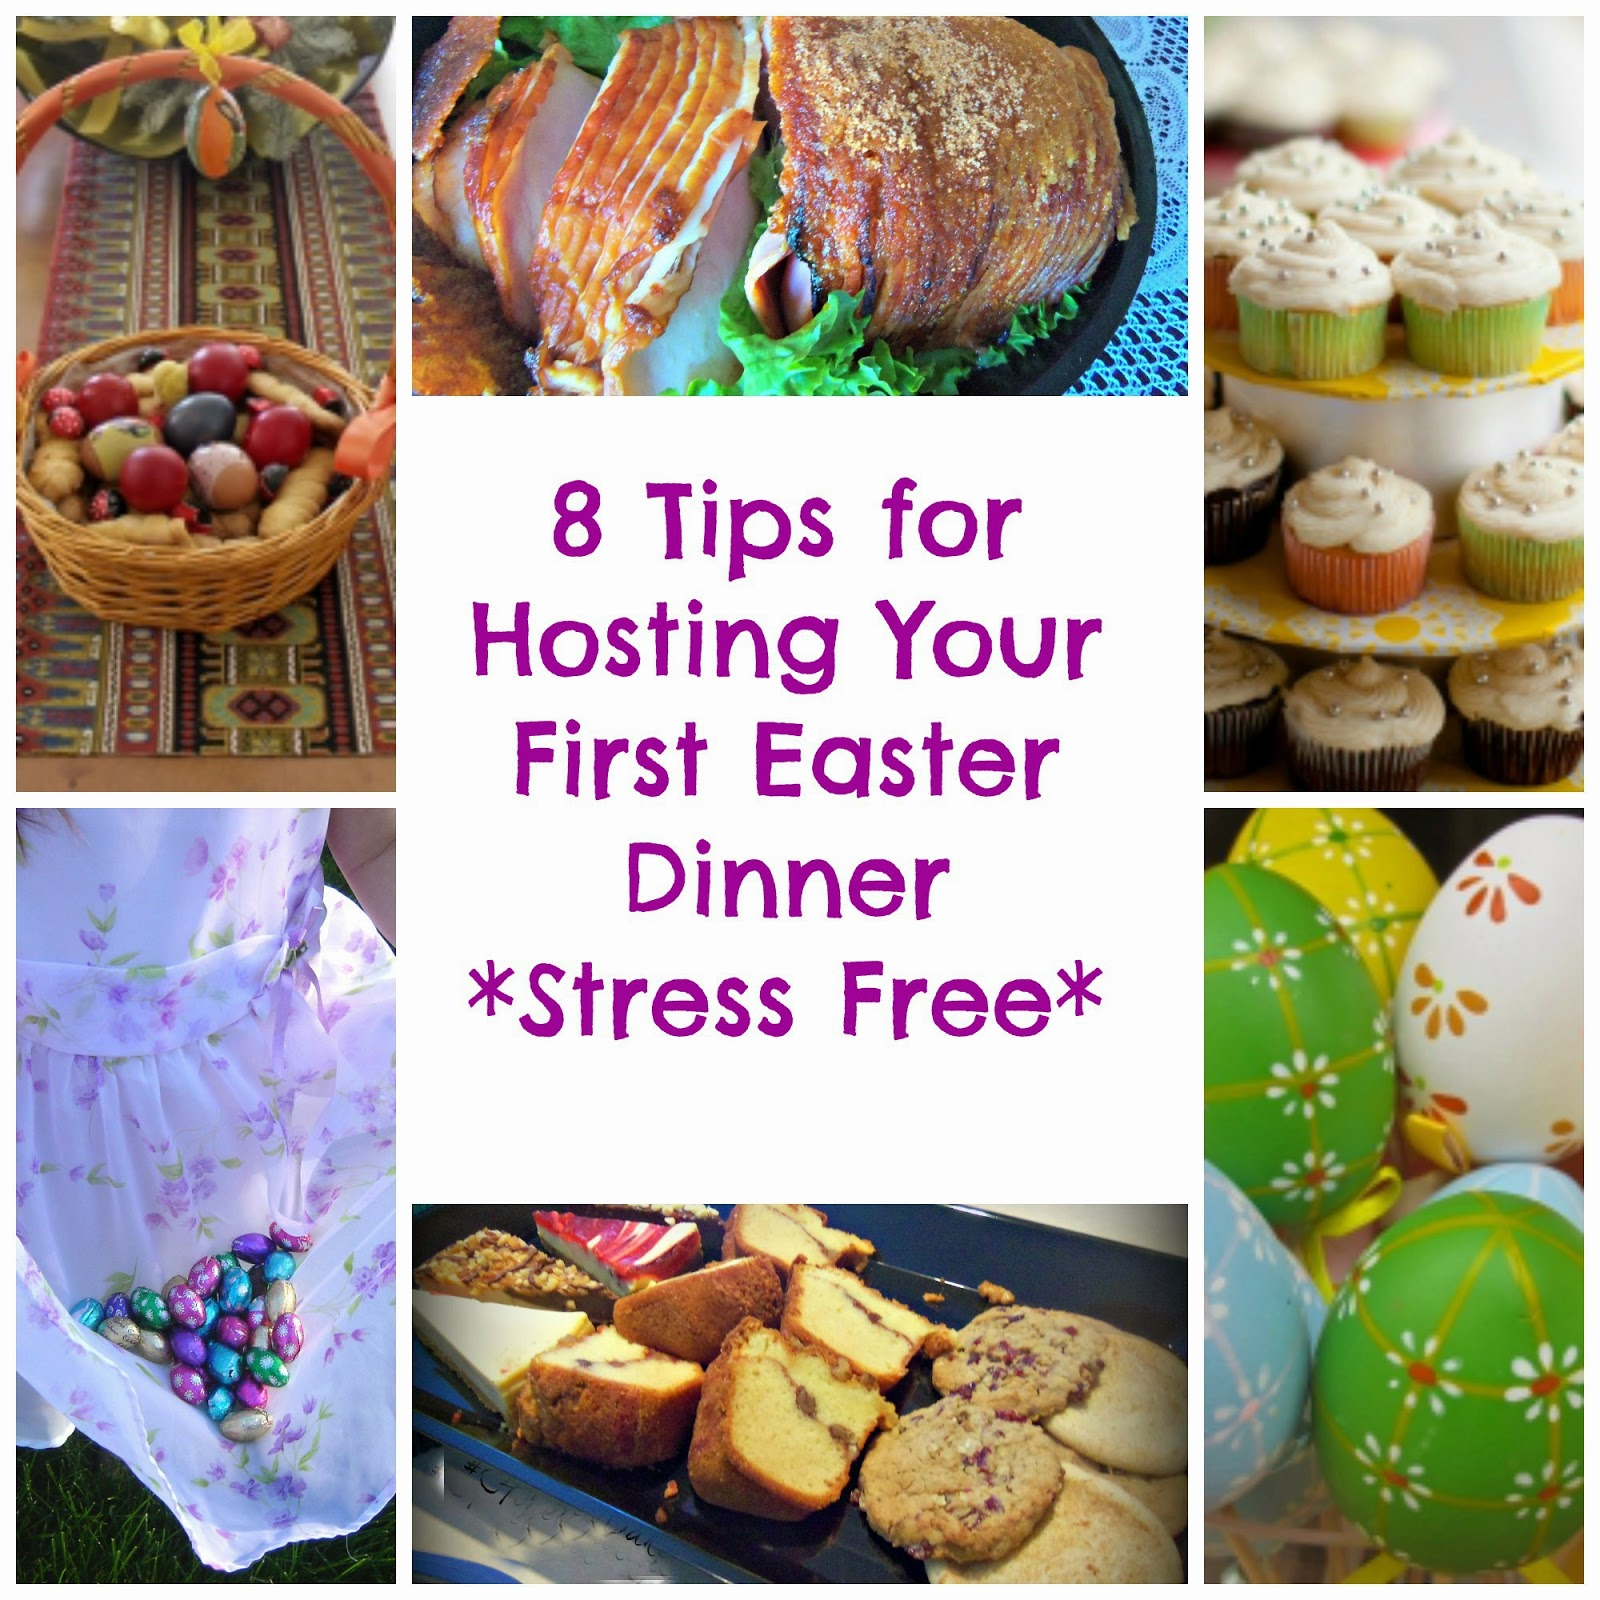 8 Tips for Hosting a Stree Free Easter Dinner